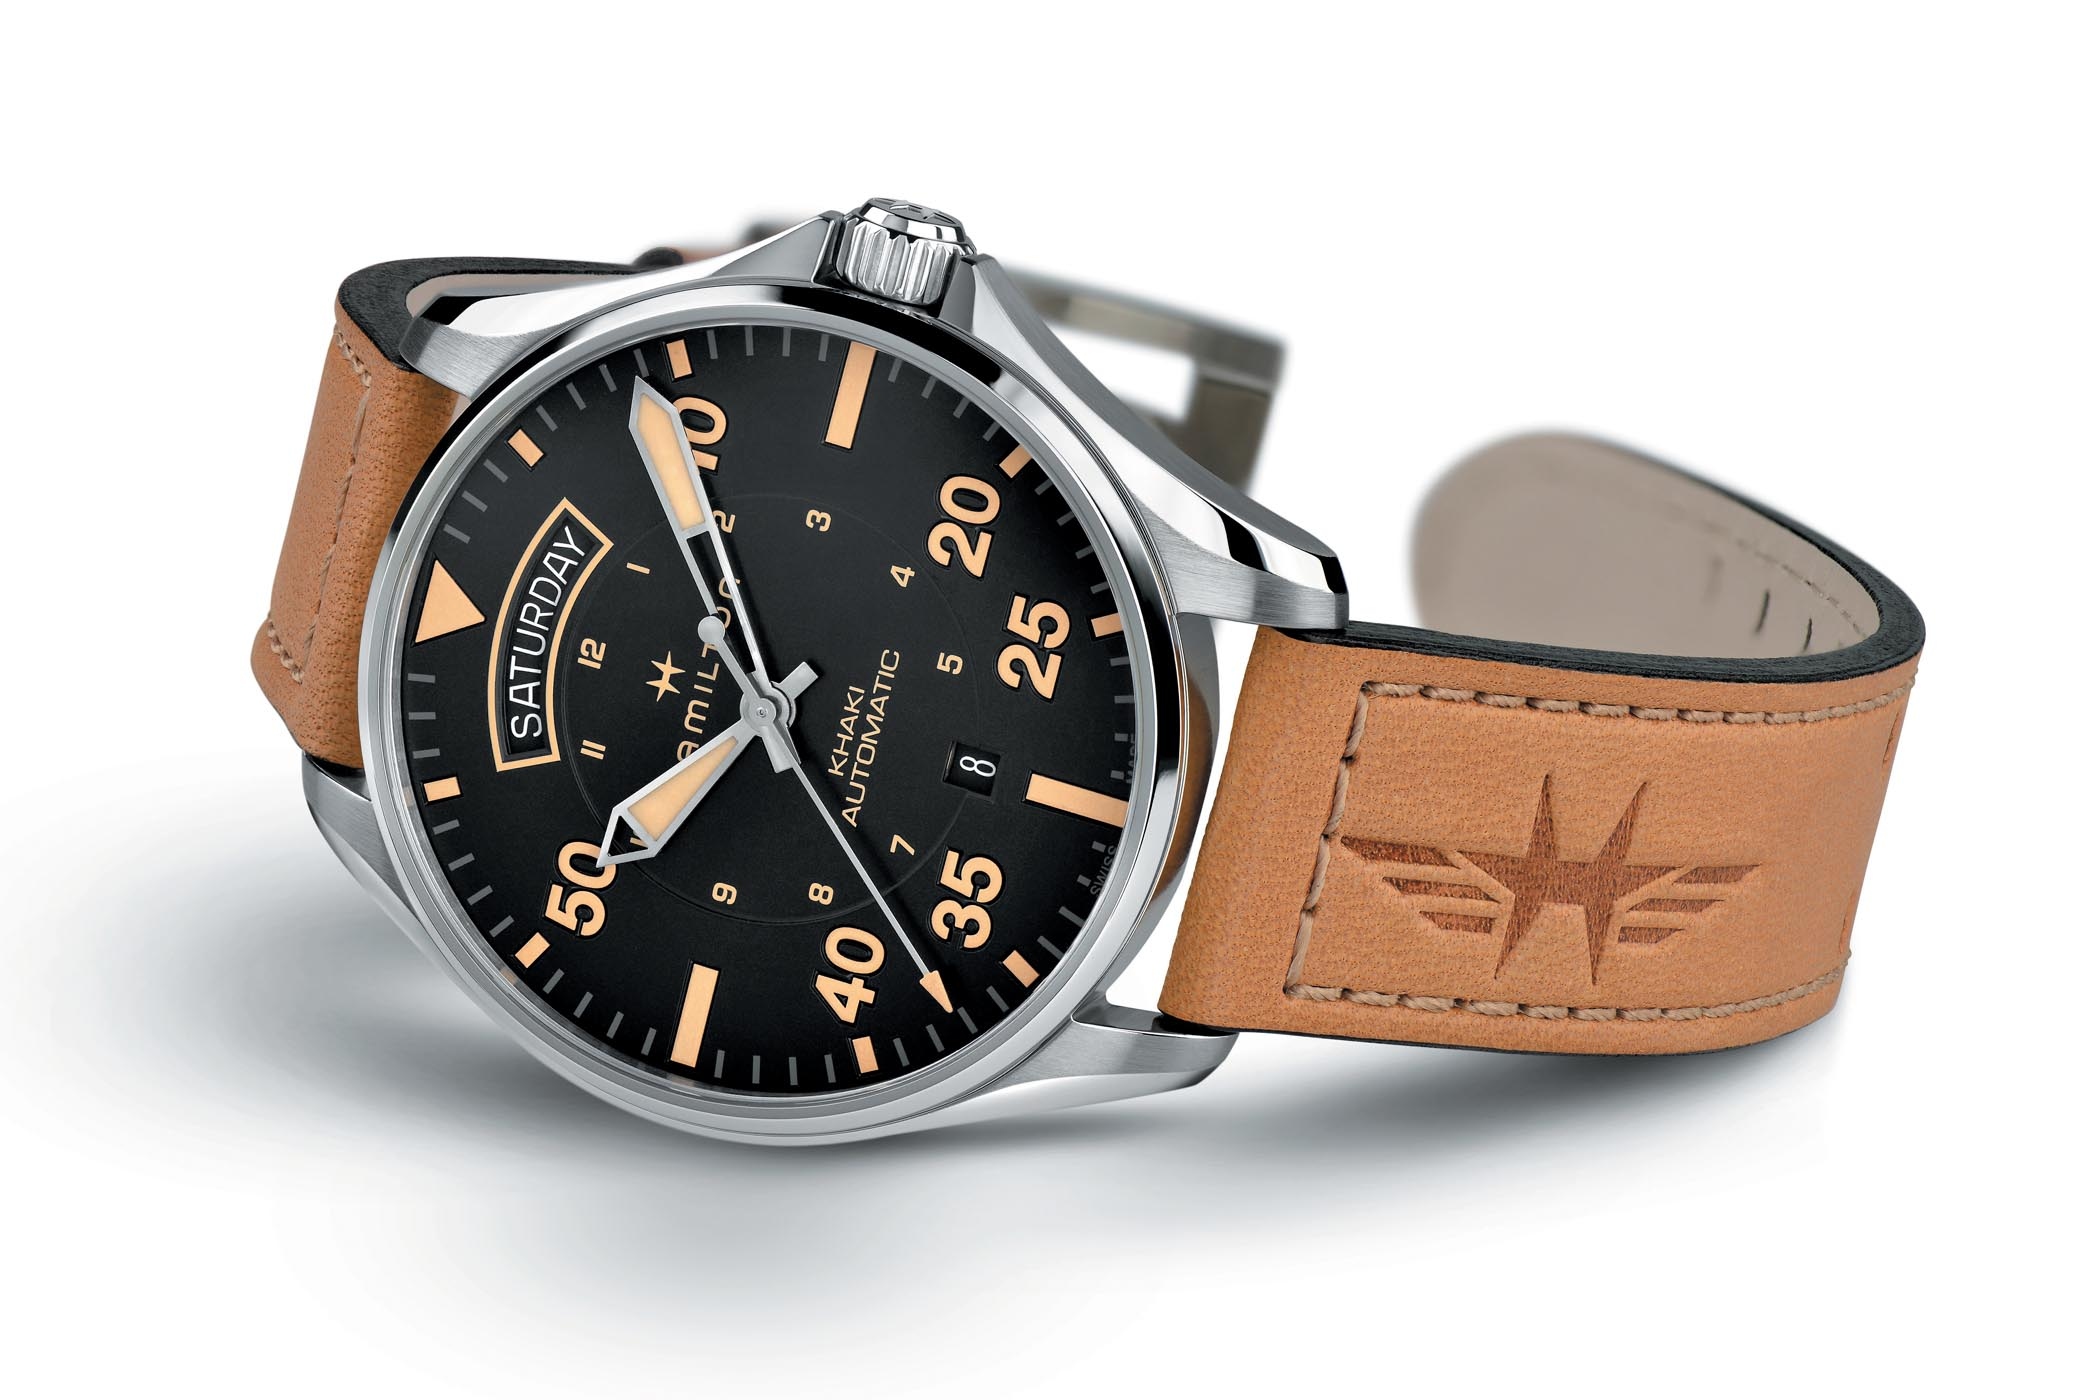 Hamilton Khaki Pilot Auto Day Date Collection - 9